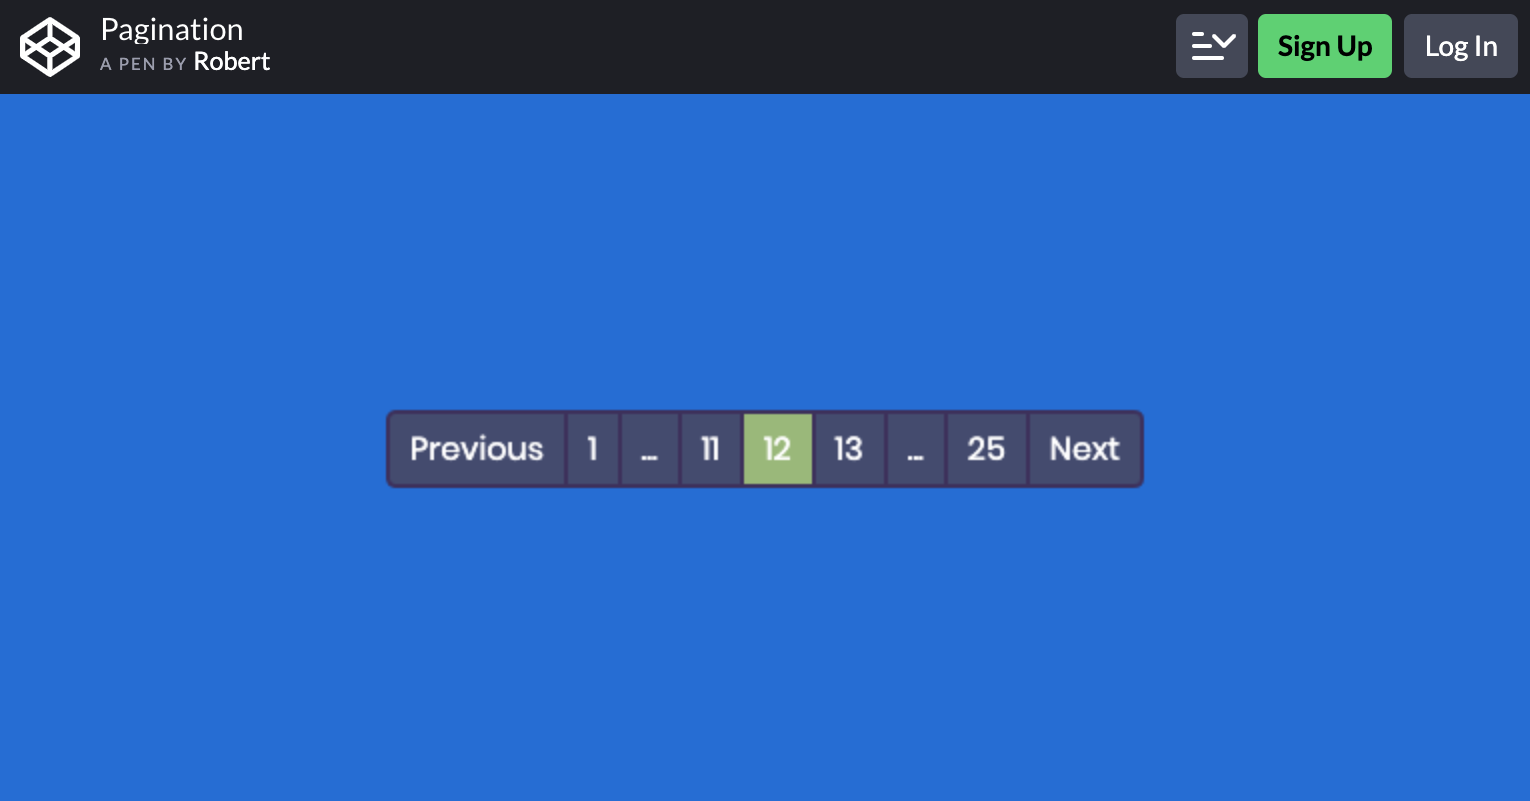 Pagination By Robert